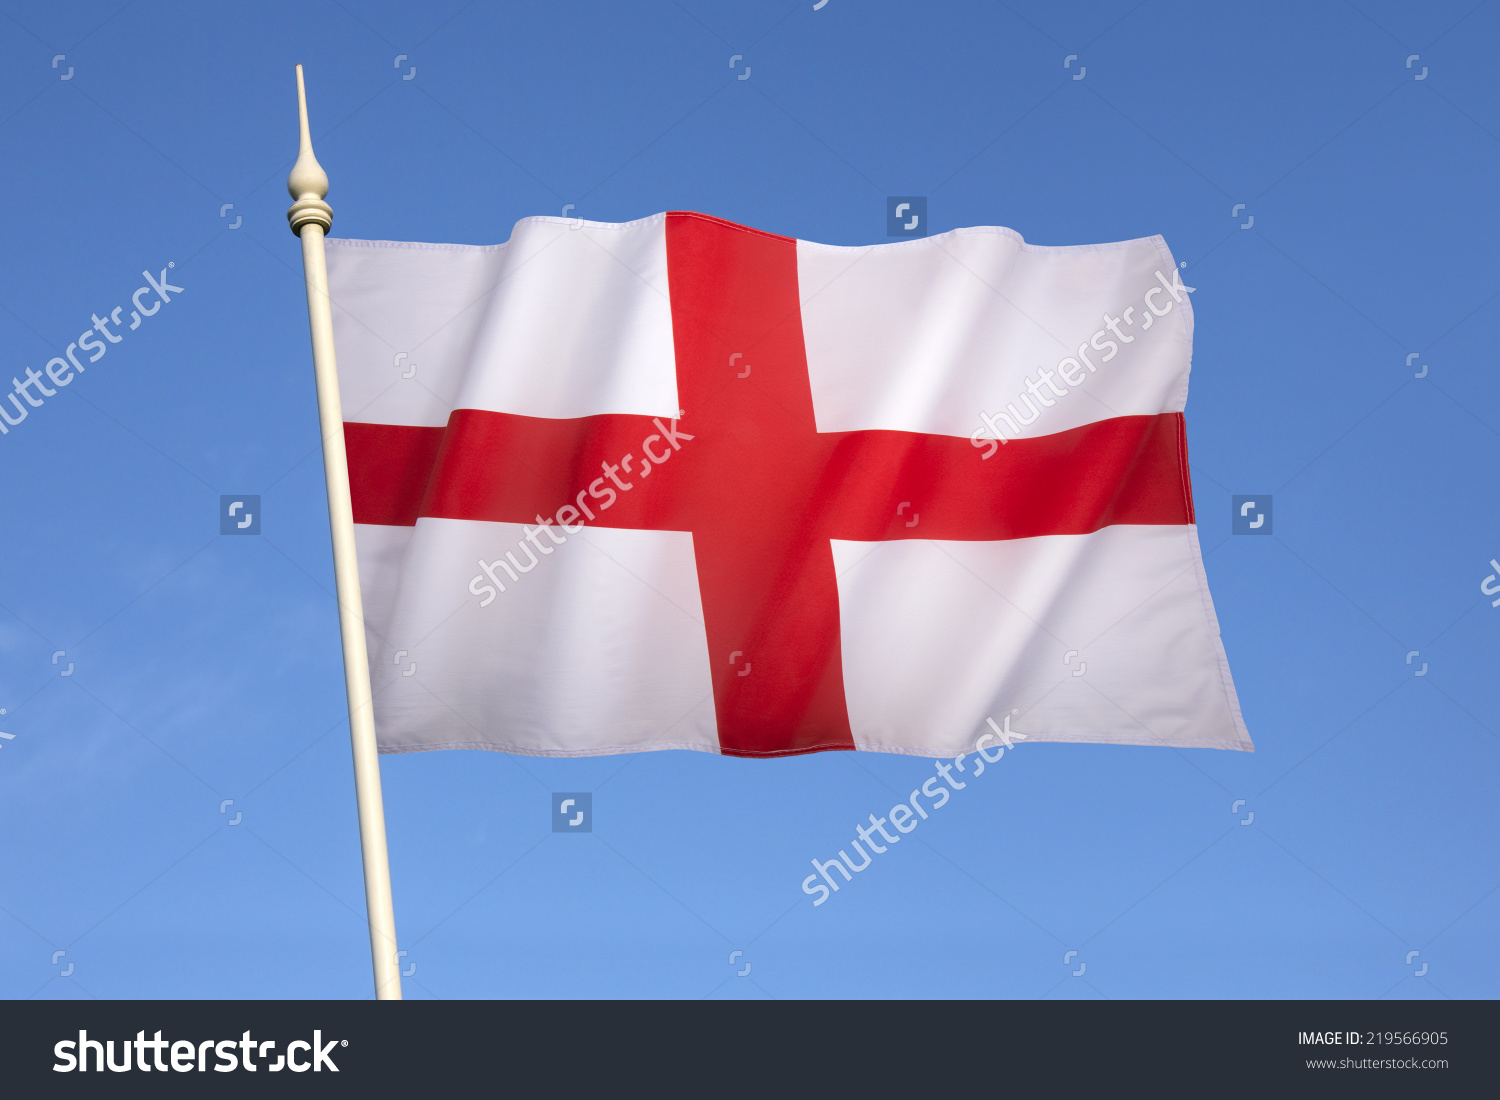 Flag With Red Cross  printable flags